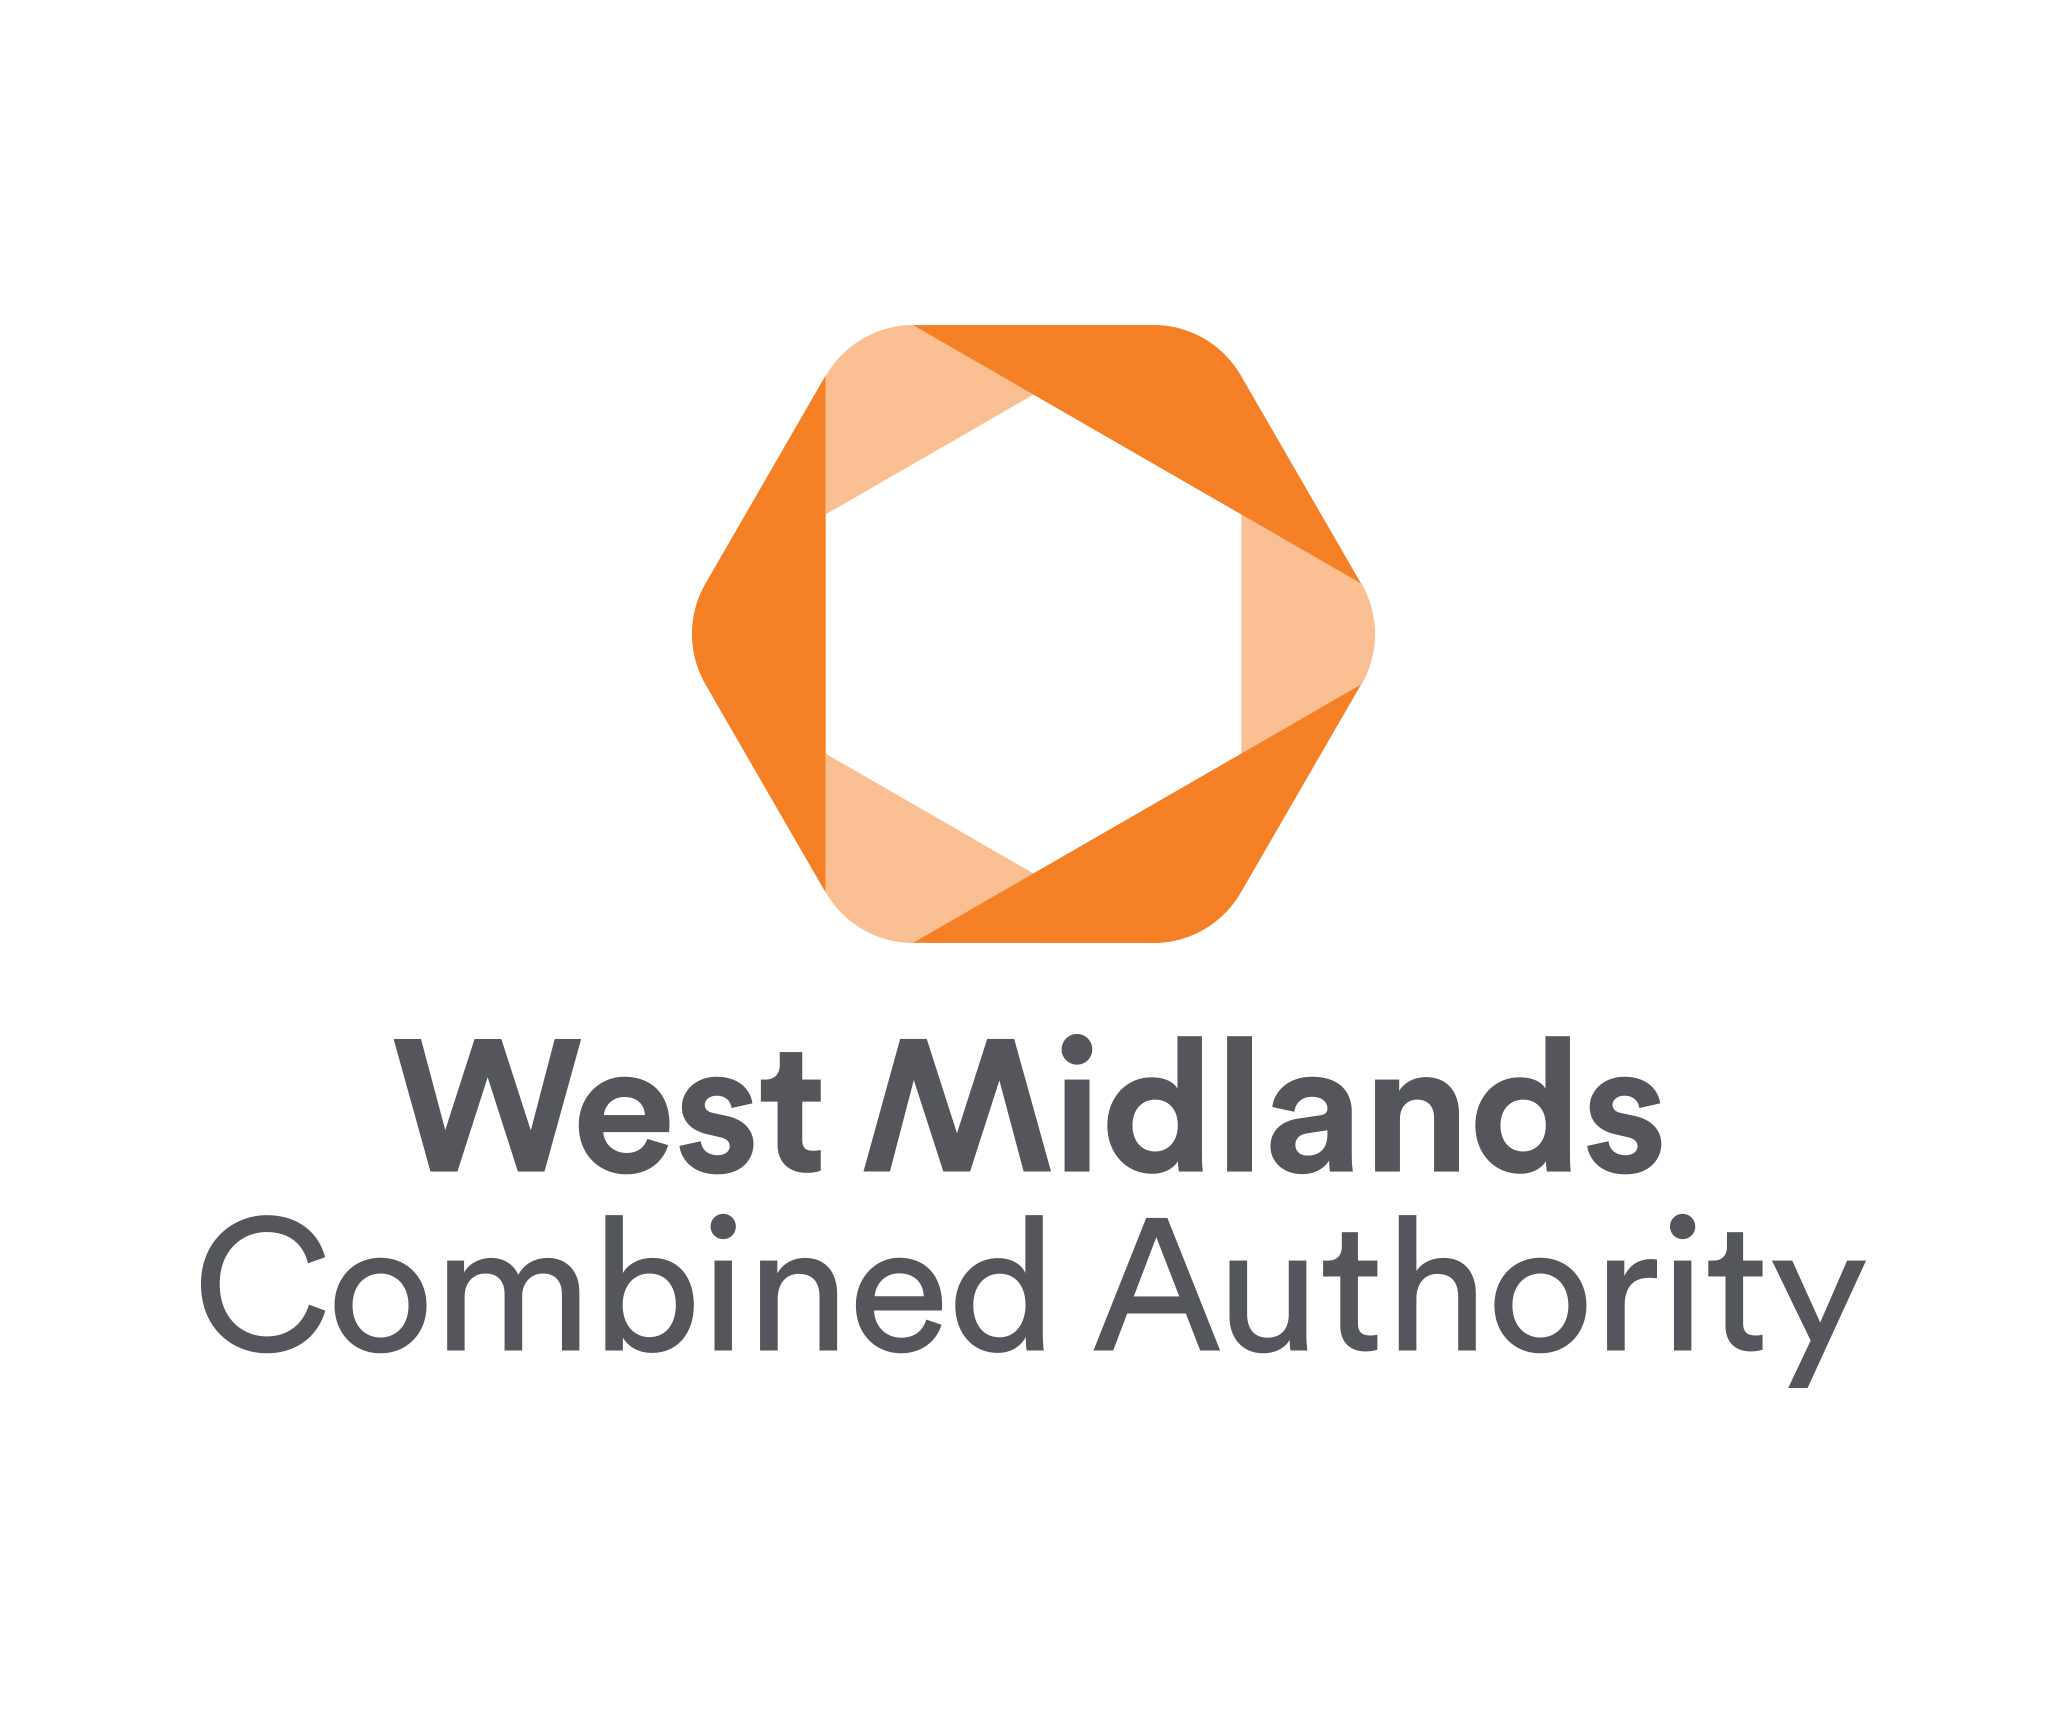 The Urgency In Fighting Childhood >> Action Plan To Combat Childhood Obesity In West Midlands Bclep